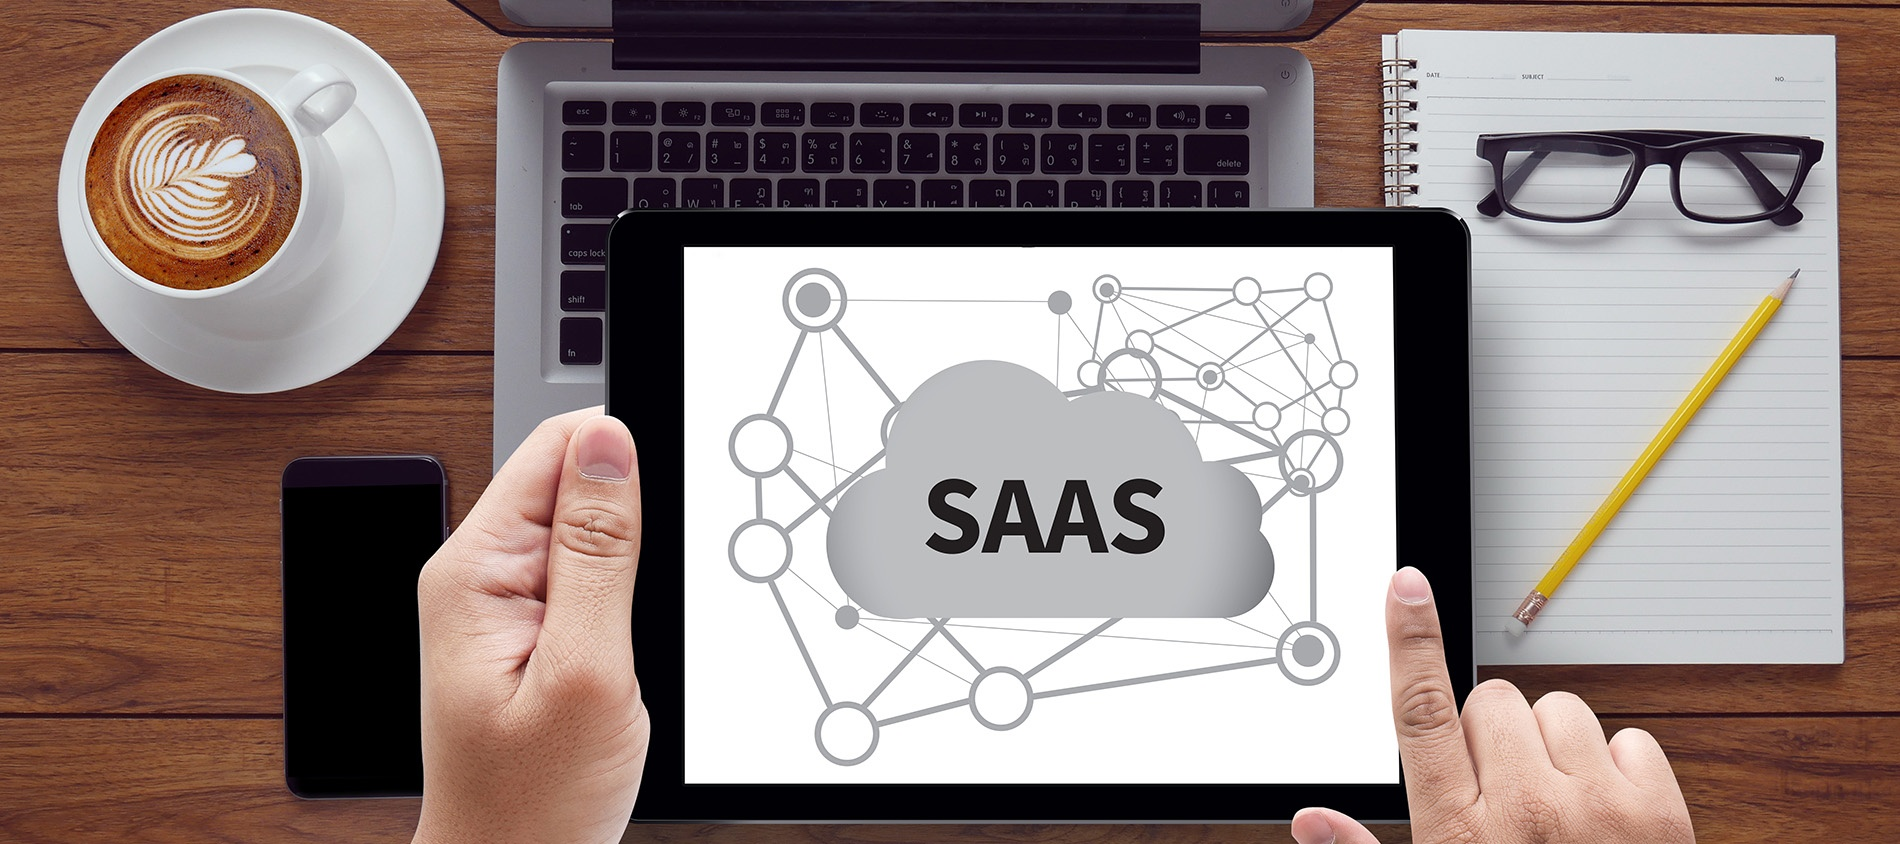 SaaS: 4 errores de inbound marketing a evitar